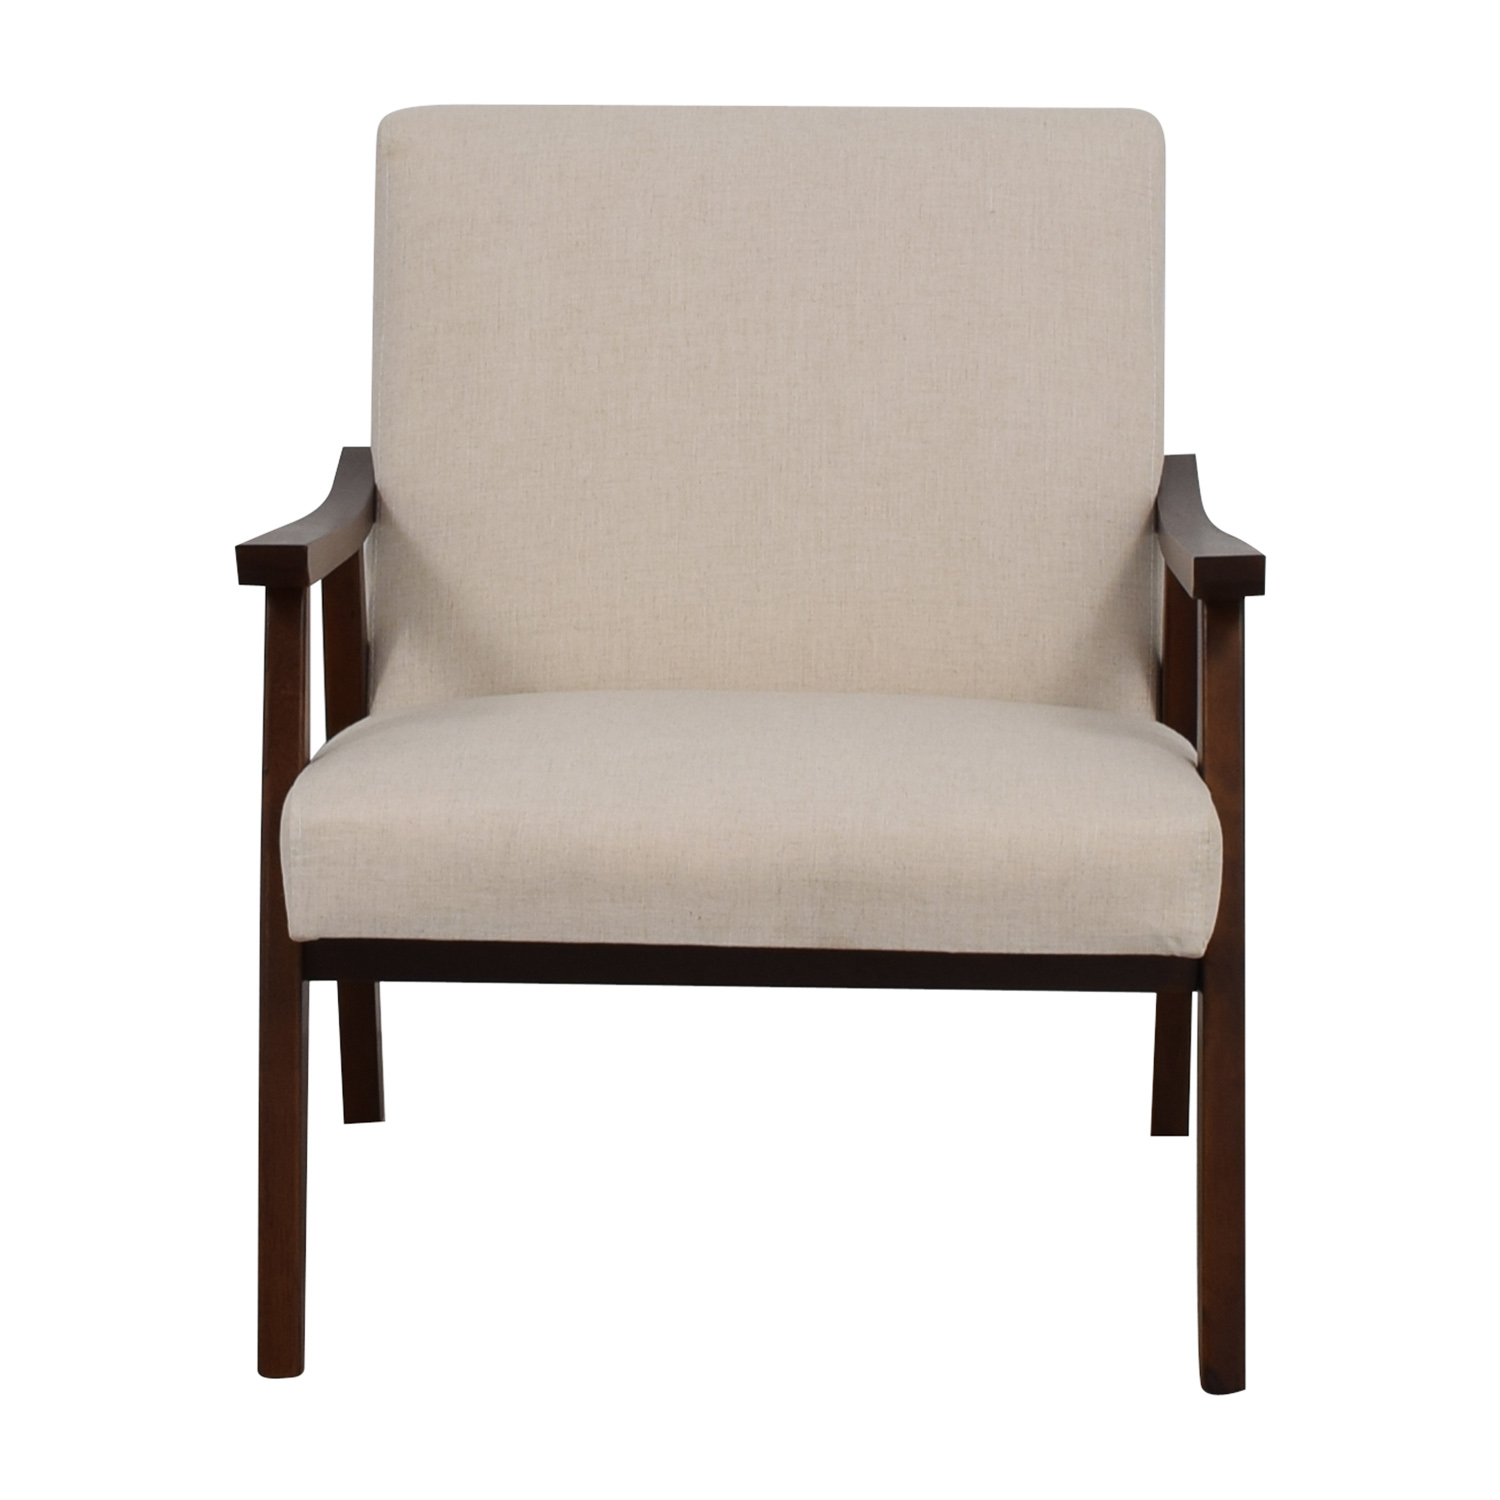 30% OFF Coral Springs Coral Springs White Linen Side Chair Chairs